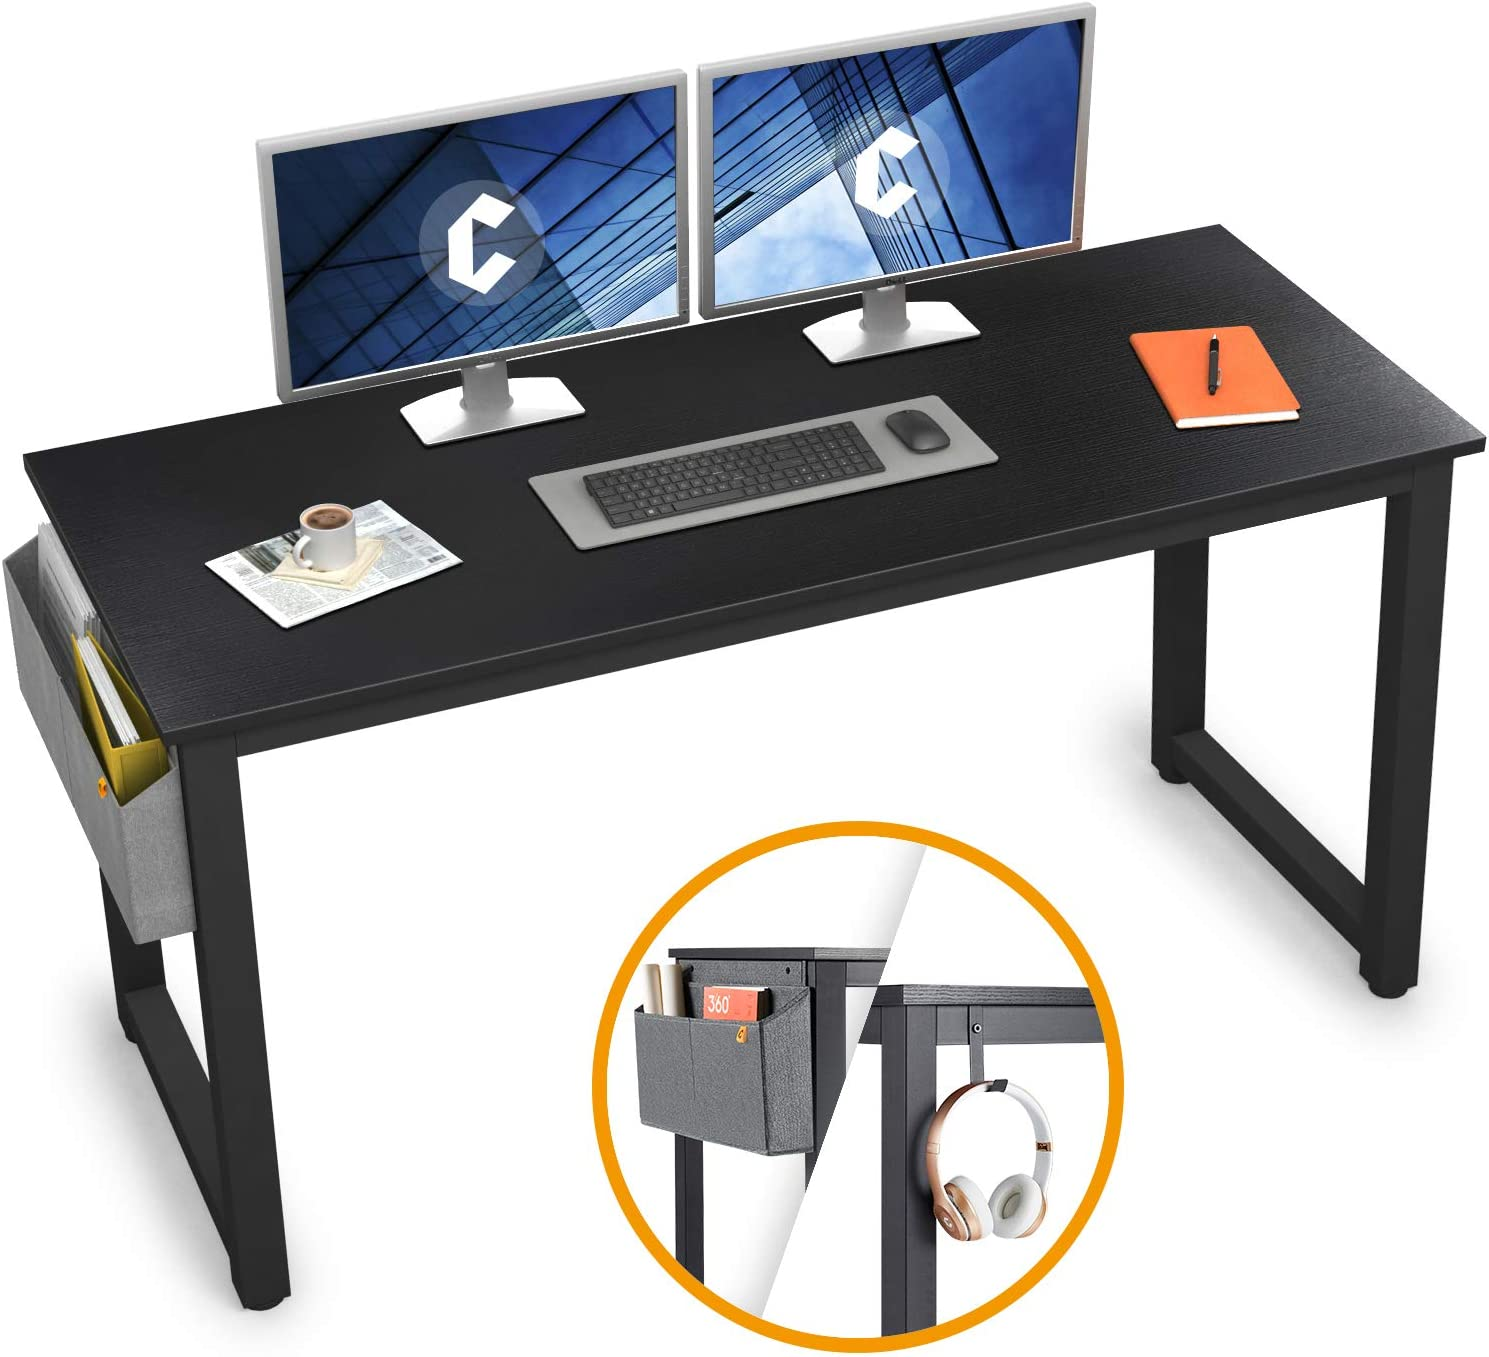 """Cubiker Computer Desk 47"""" Sturdy Office Desk Modern Simple Style Table for Home Office, Notebook Writing Desk with Extra Strong Legs, Black"""